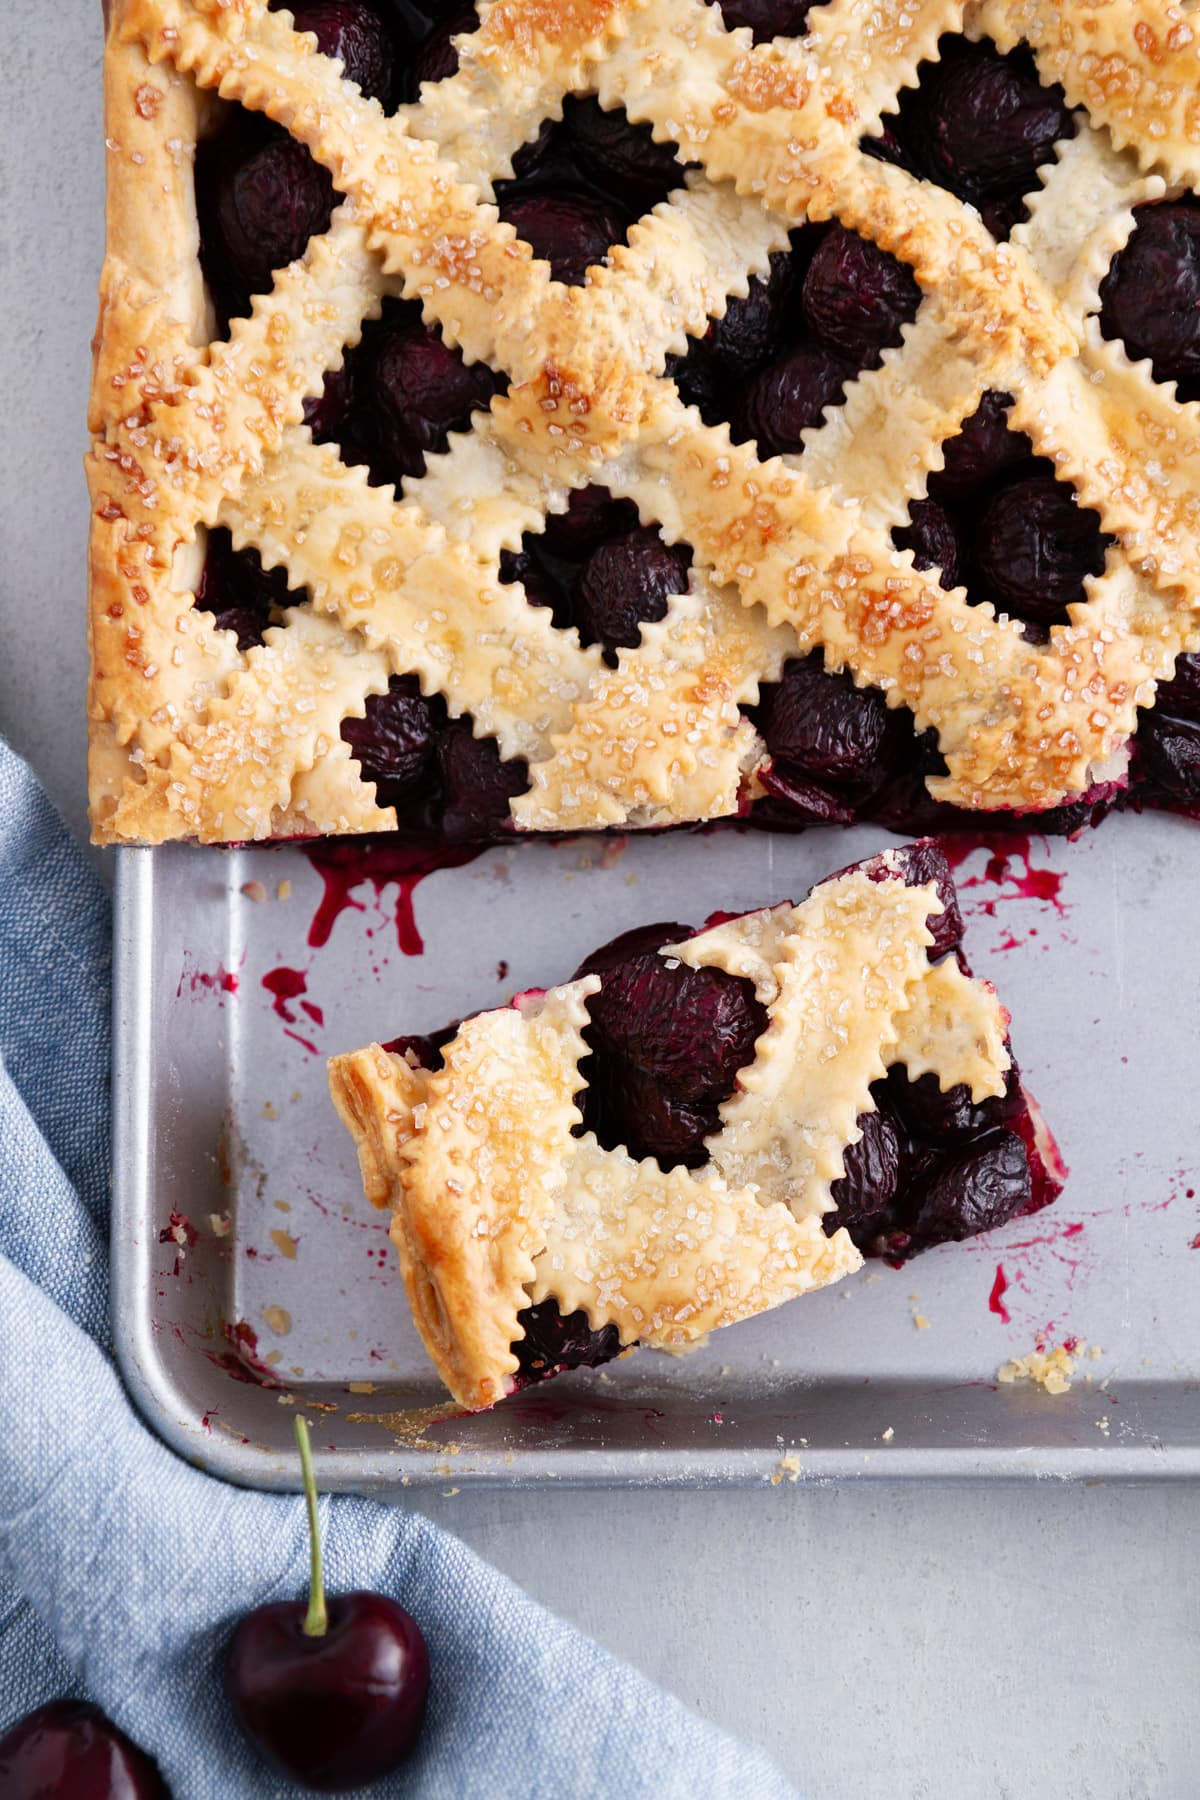 A cherry pie bar cut out on the pan